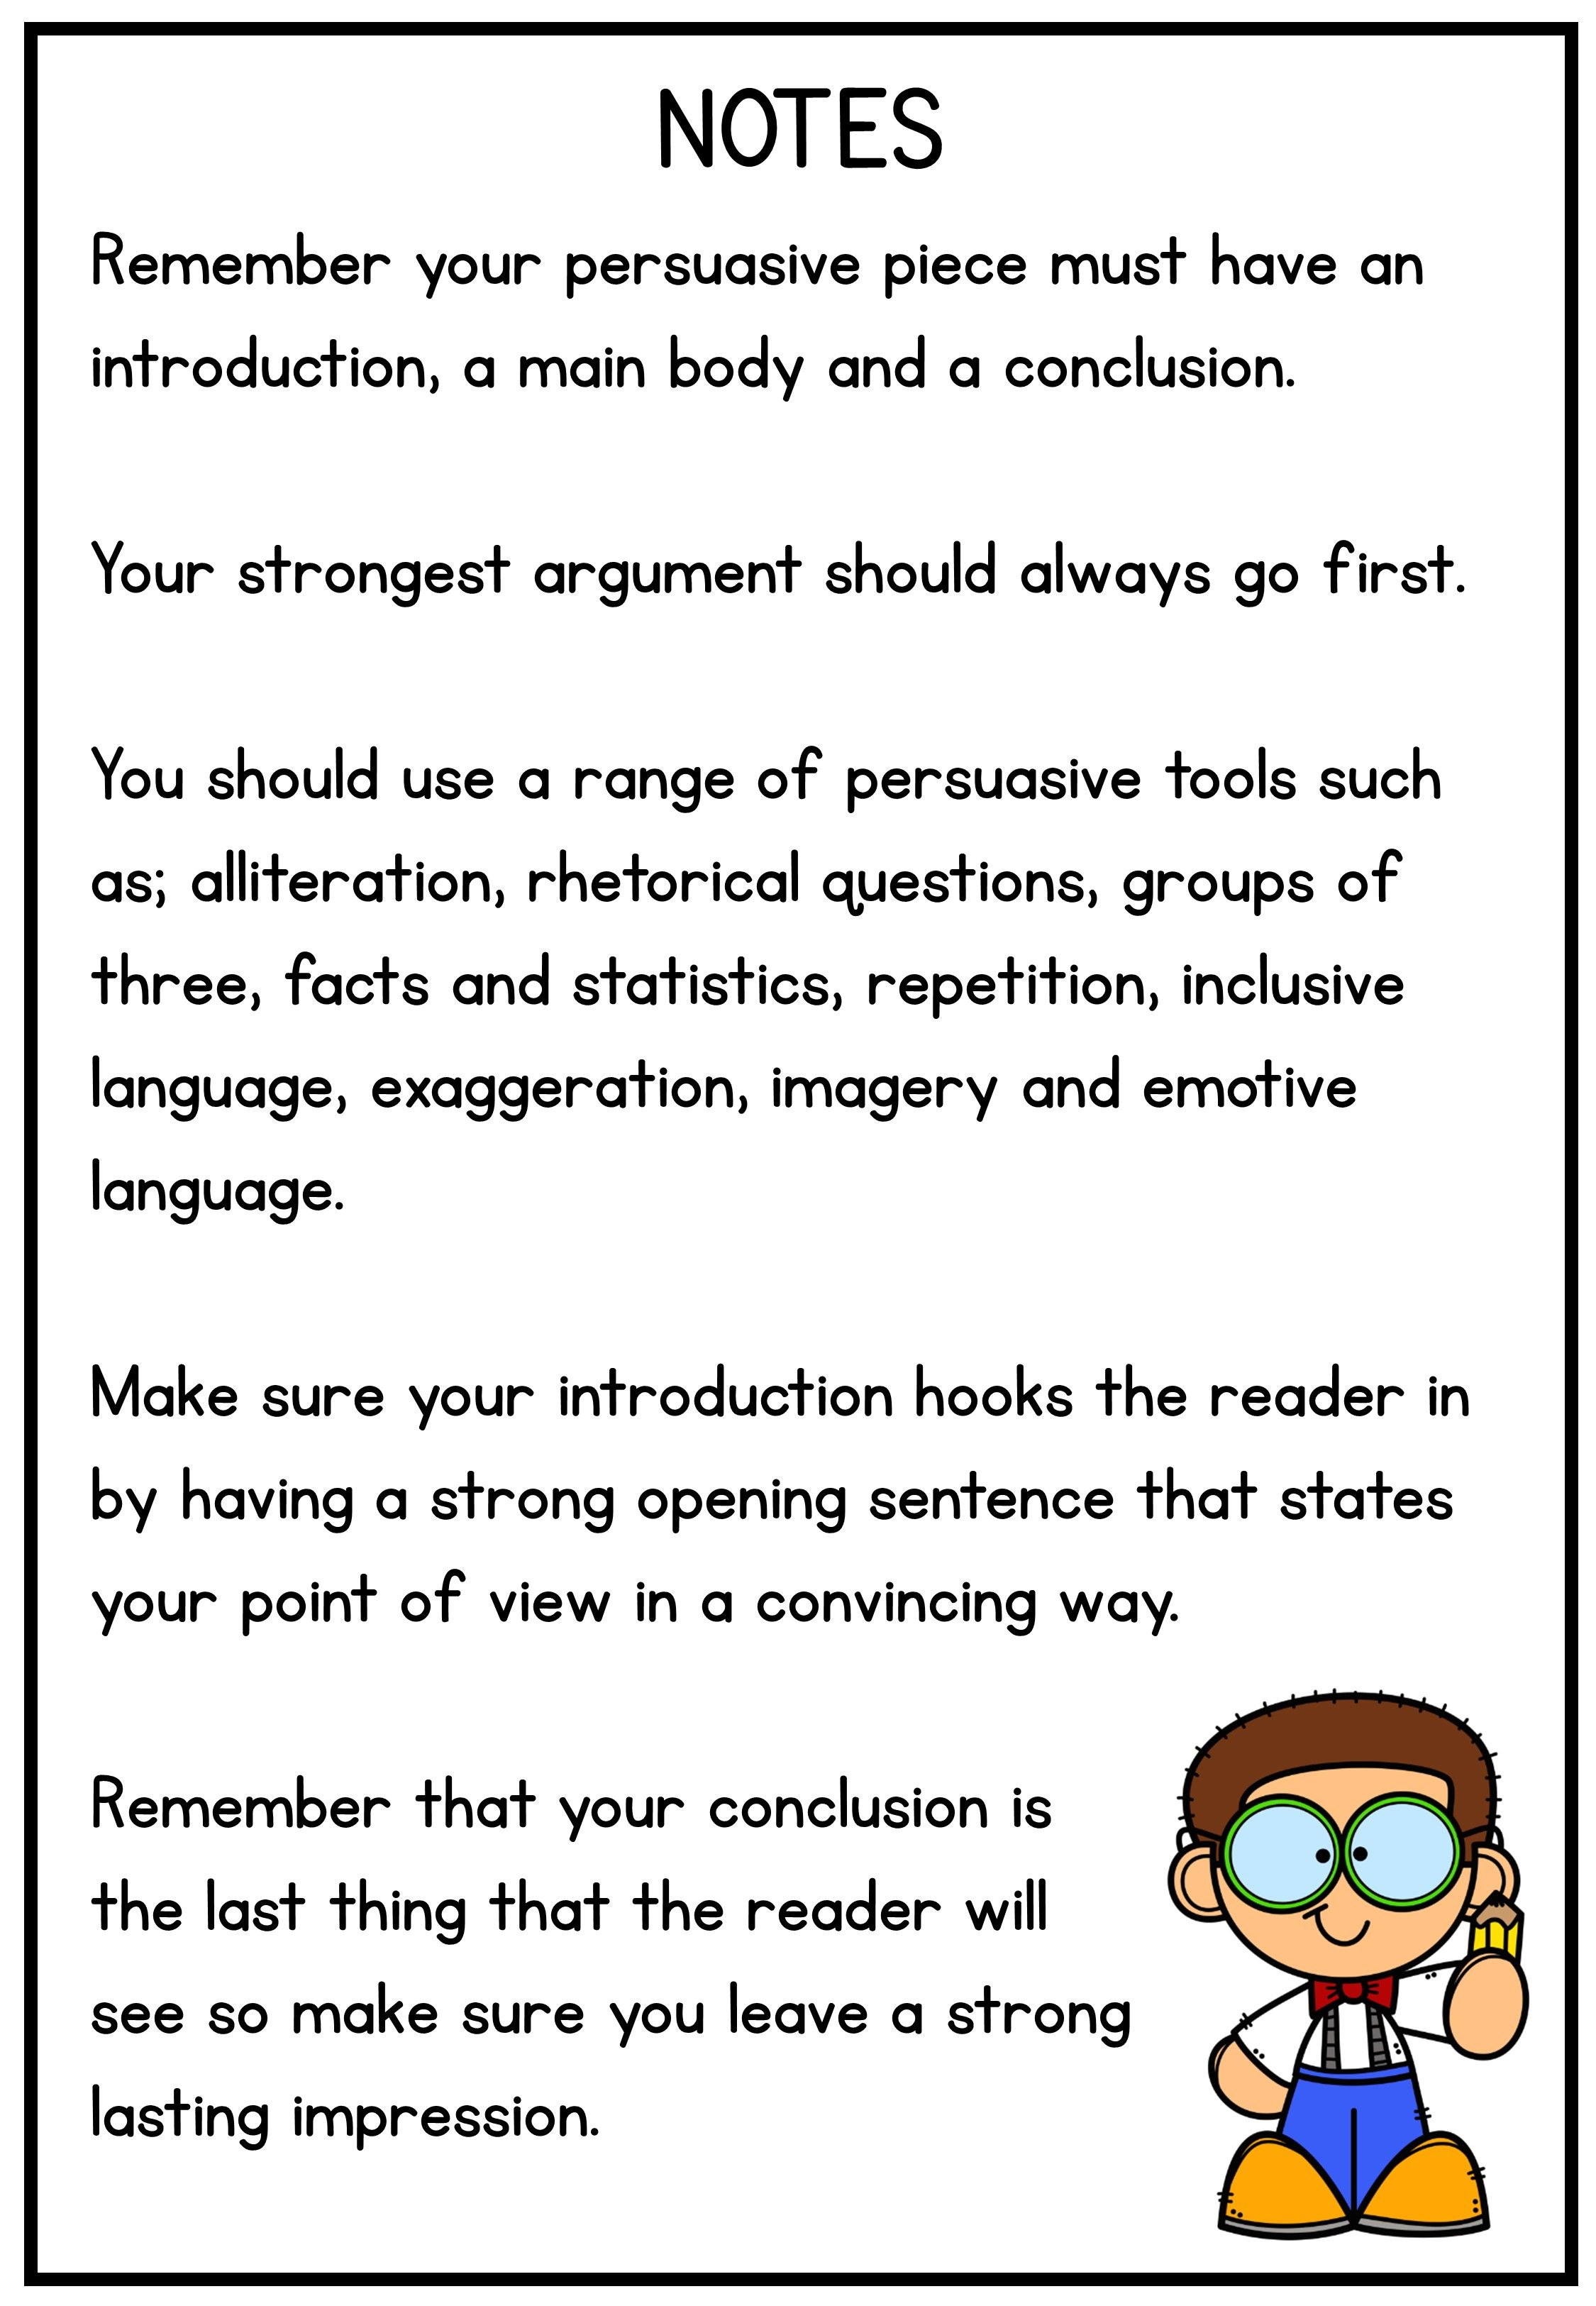 Persuasive Writing Note Sentence Starter And Tool Prompt Introductions Argumentative Essay On Domestic Violence